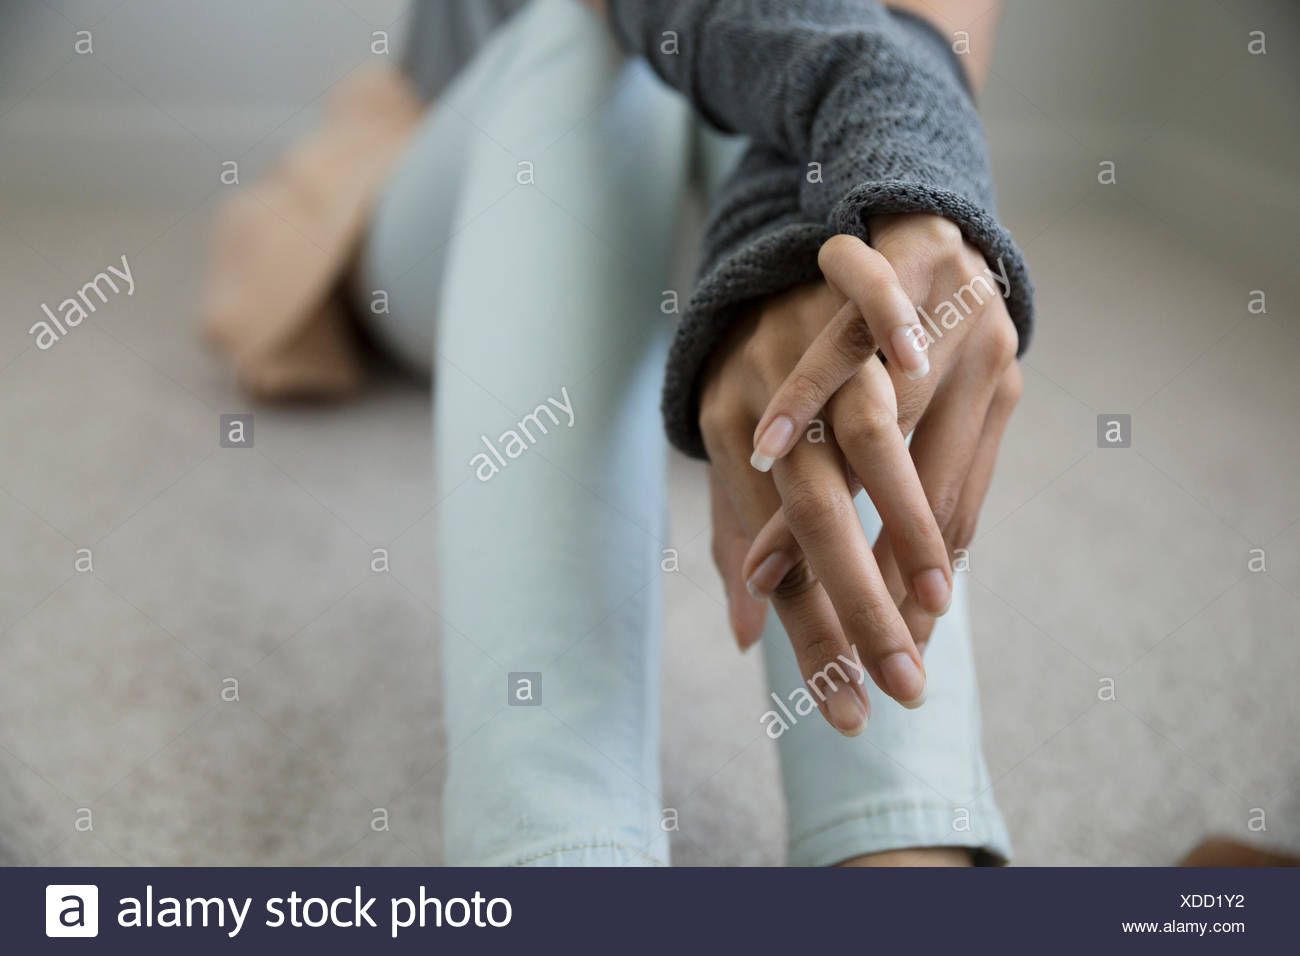 Close up young woman with hands clasped - Stock Image